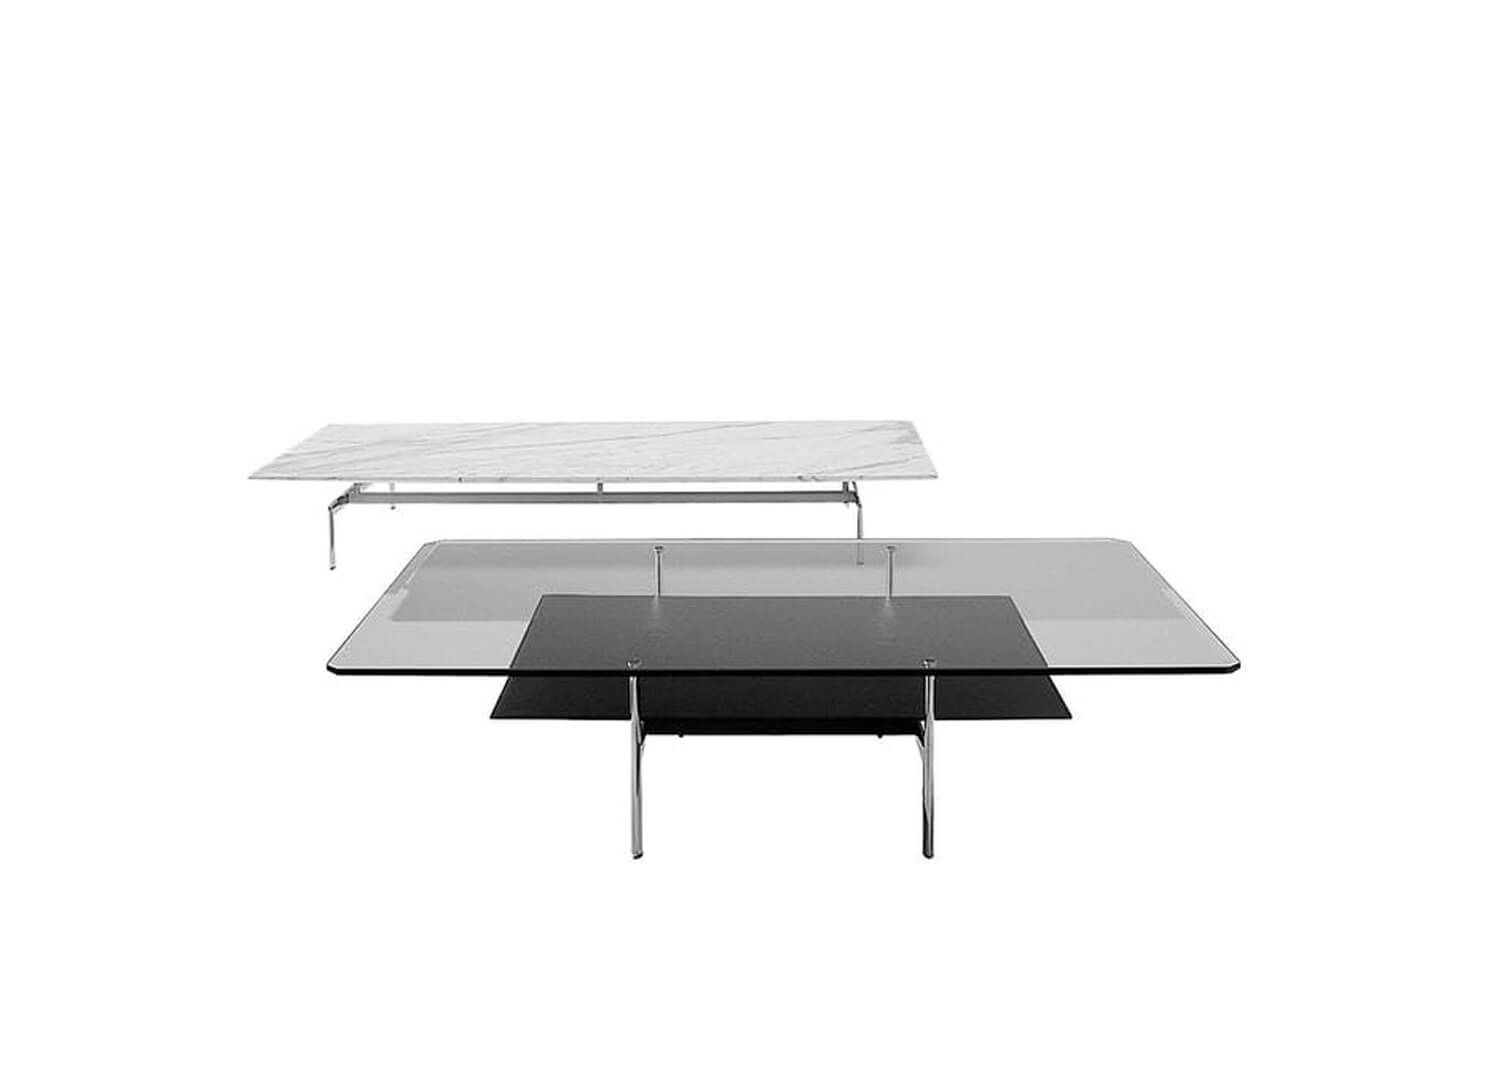 Flexform Fly Outdoor Round Coffee Table By Antonio Citterio Everything But Ordinary Round Coffee Table Flexform Outdoor Coffee Tables [ 1102 x 1920 Pixel ]